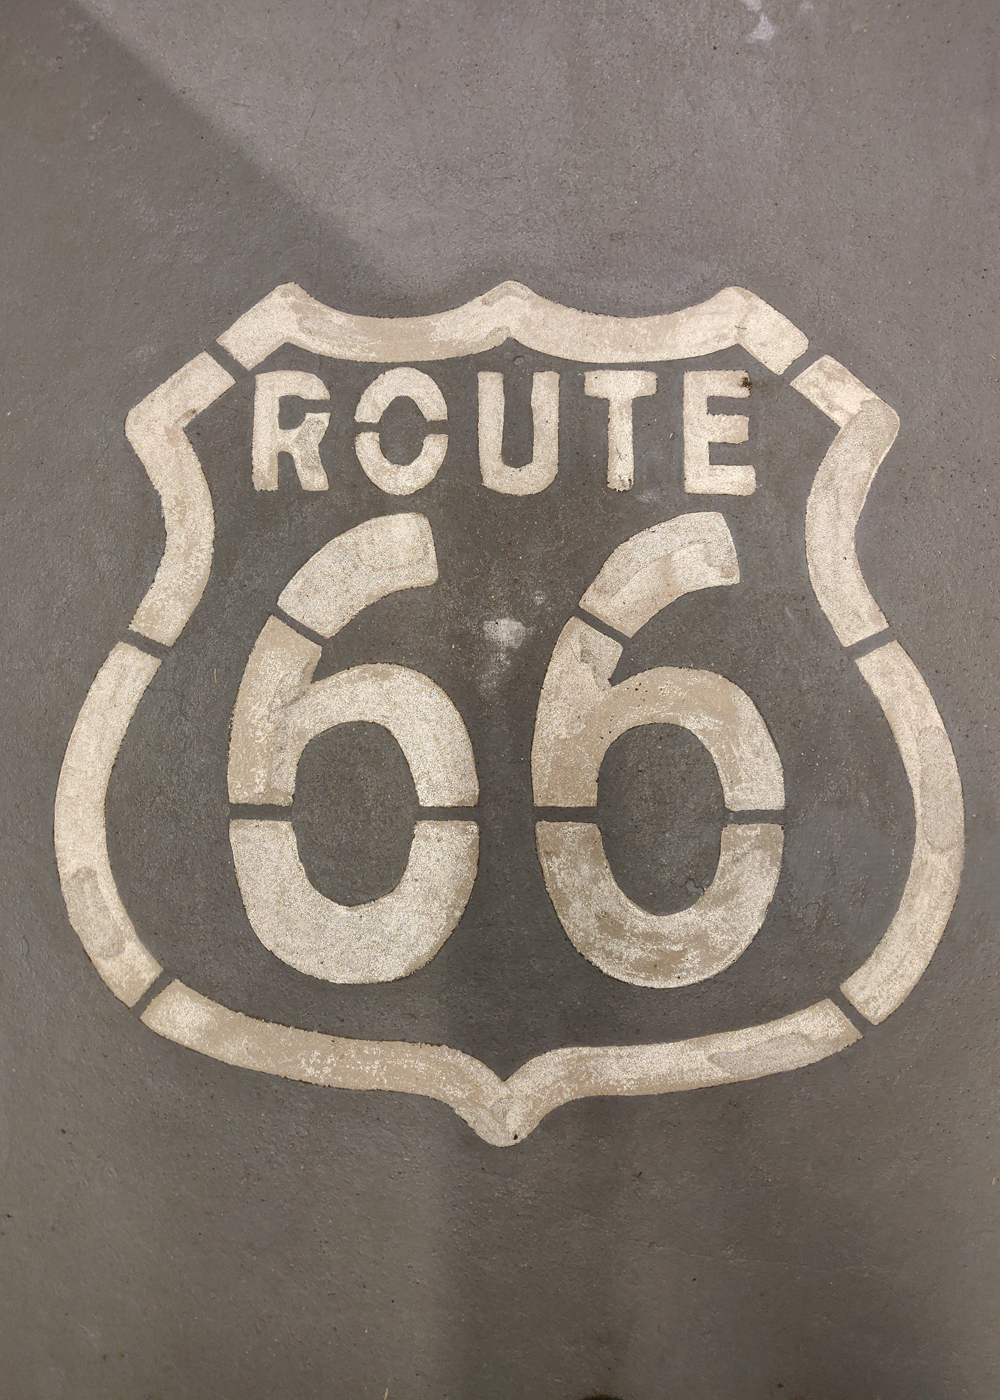 Arizona's Route 66